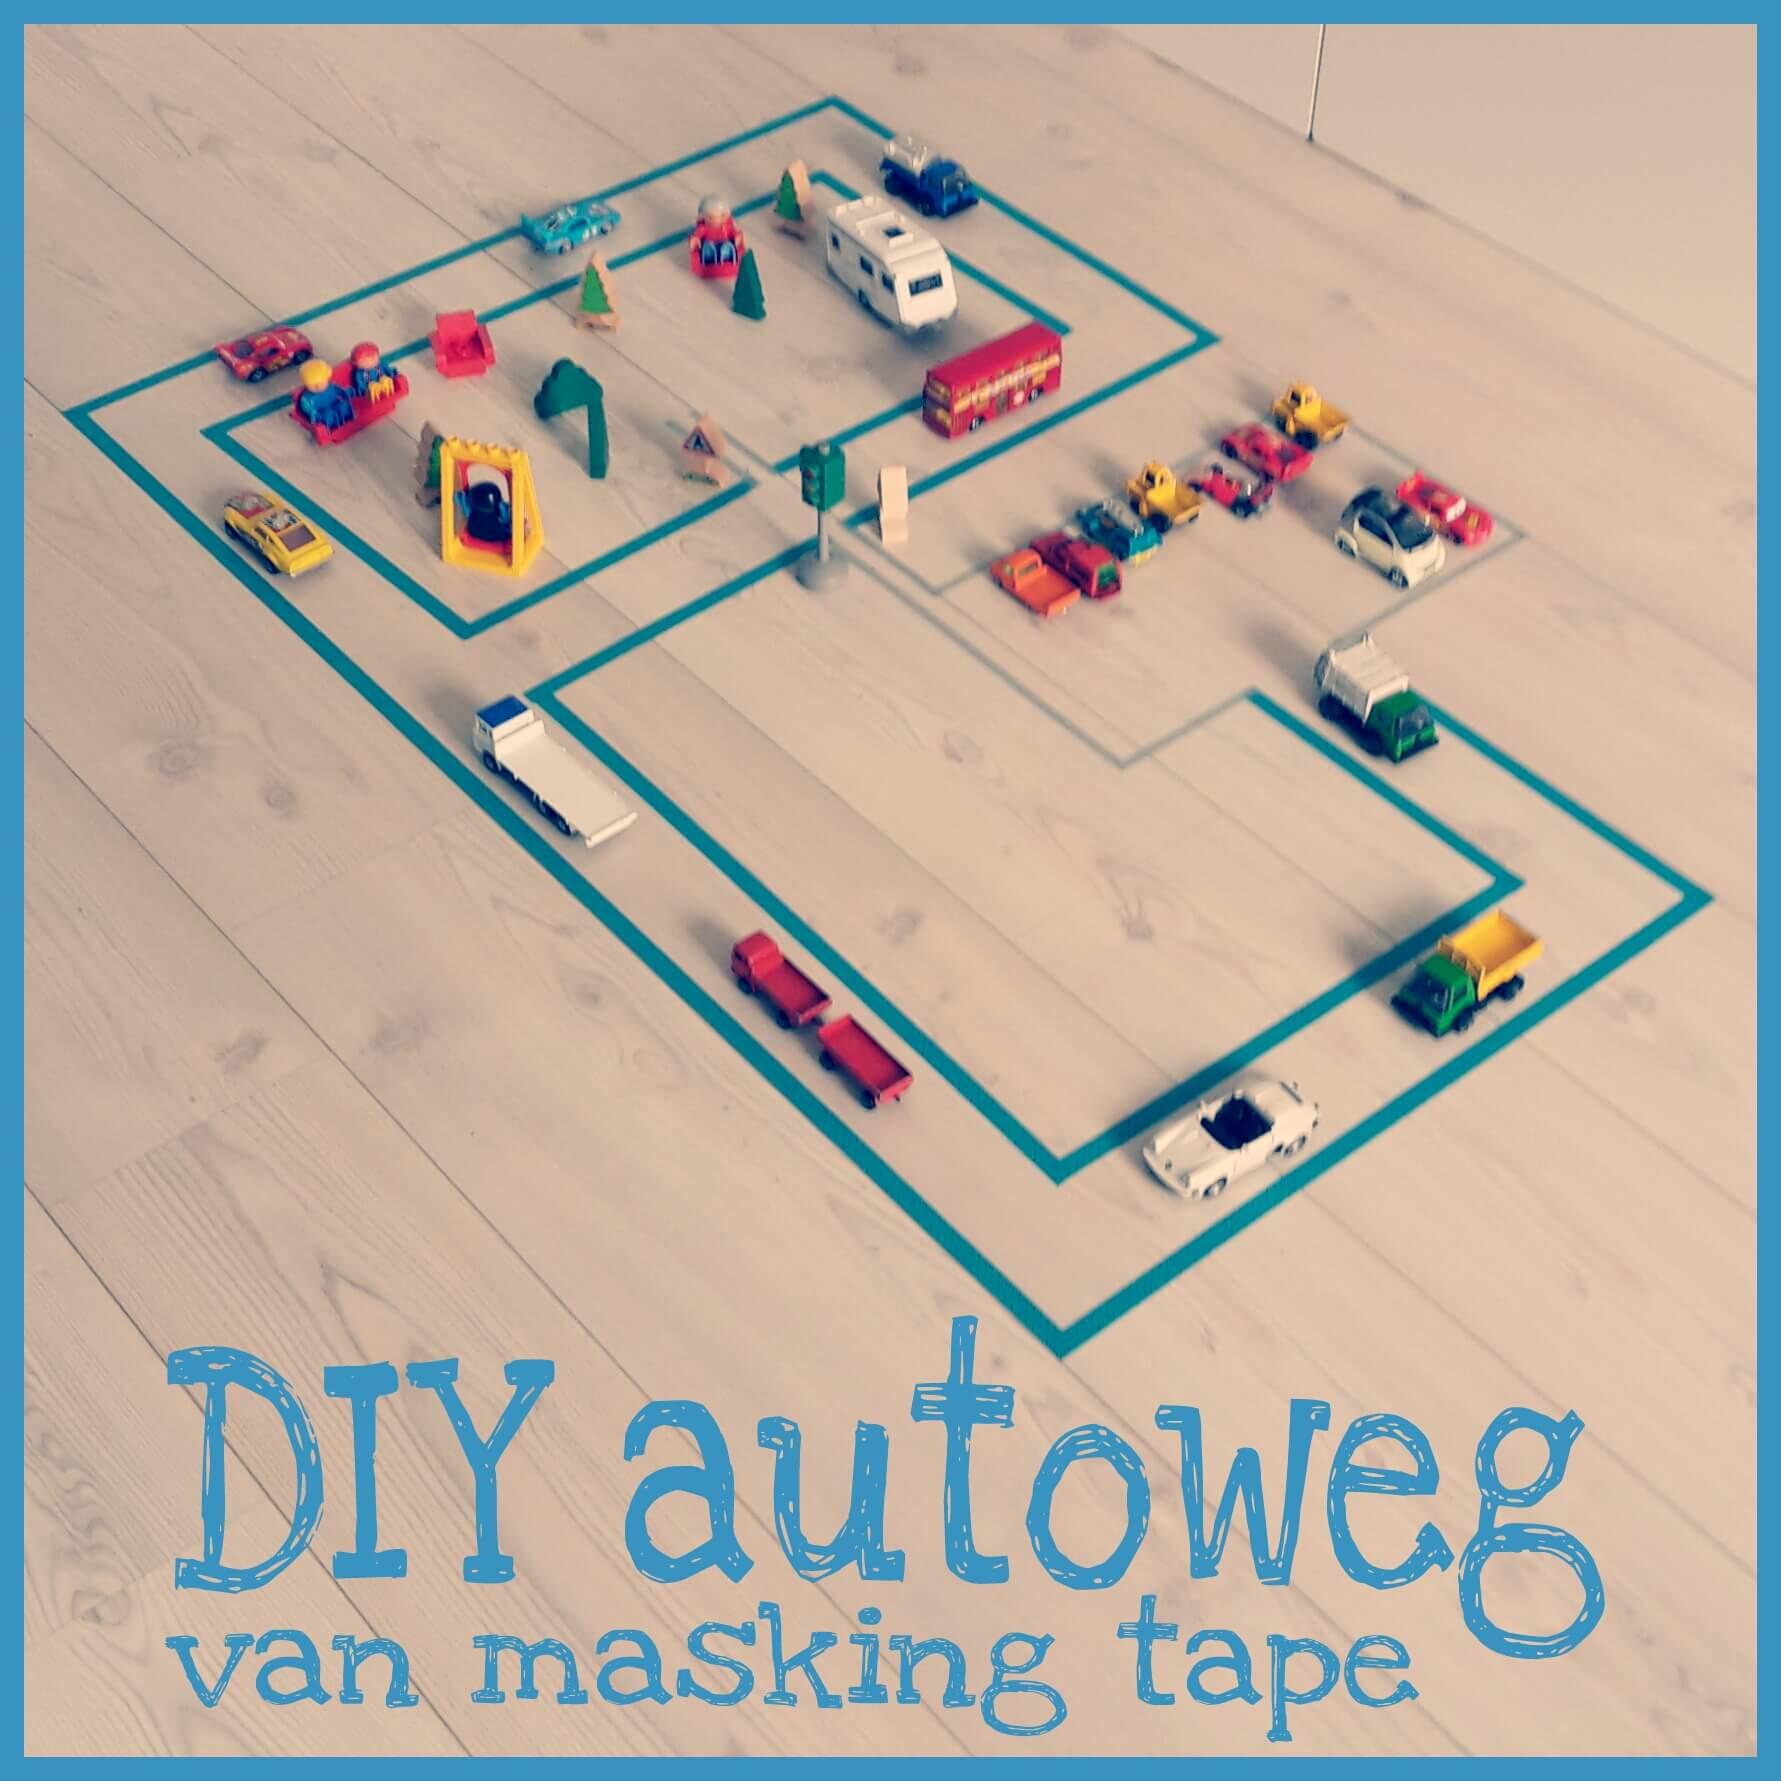 diy autoweg van masking tape leuk met kids. Black Bedroom Furniture Sets. Home Design Ideas